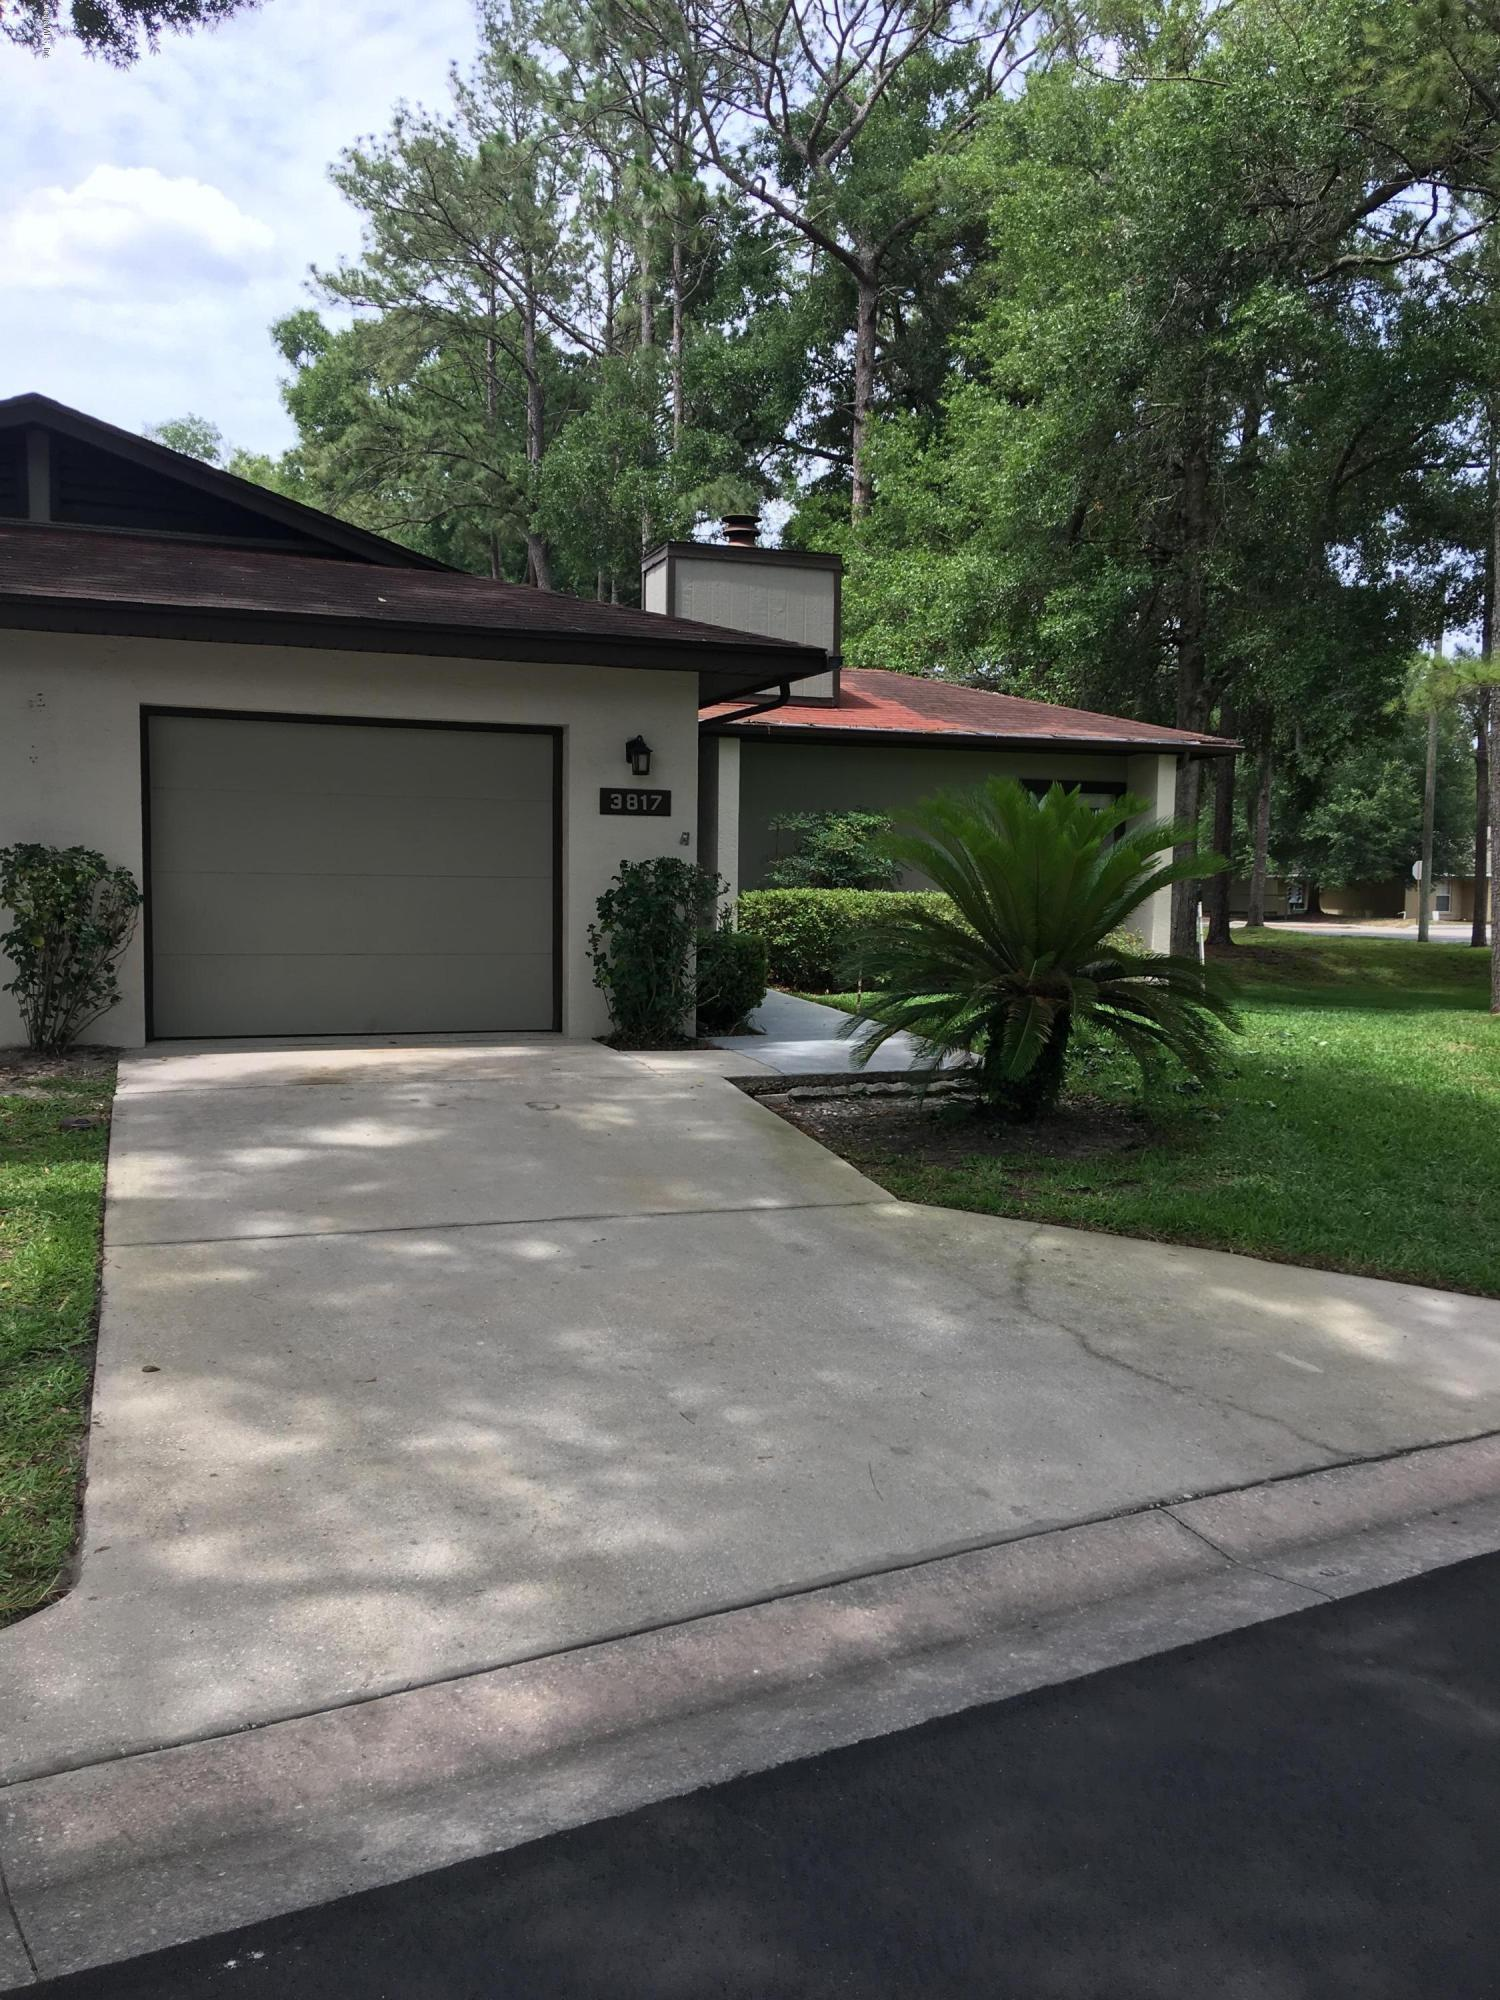 3817 NE 17TH STREET, OCALA, FL 34470